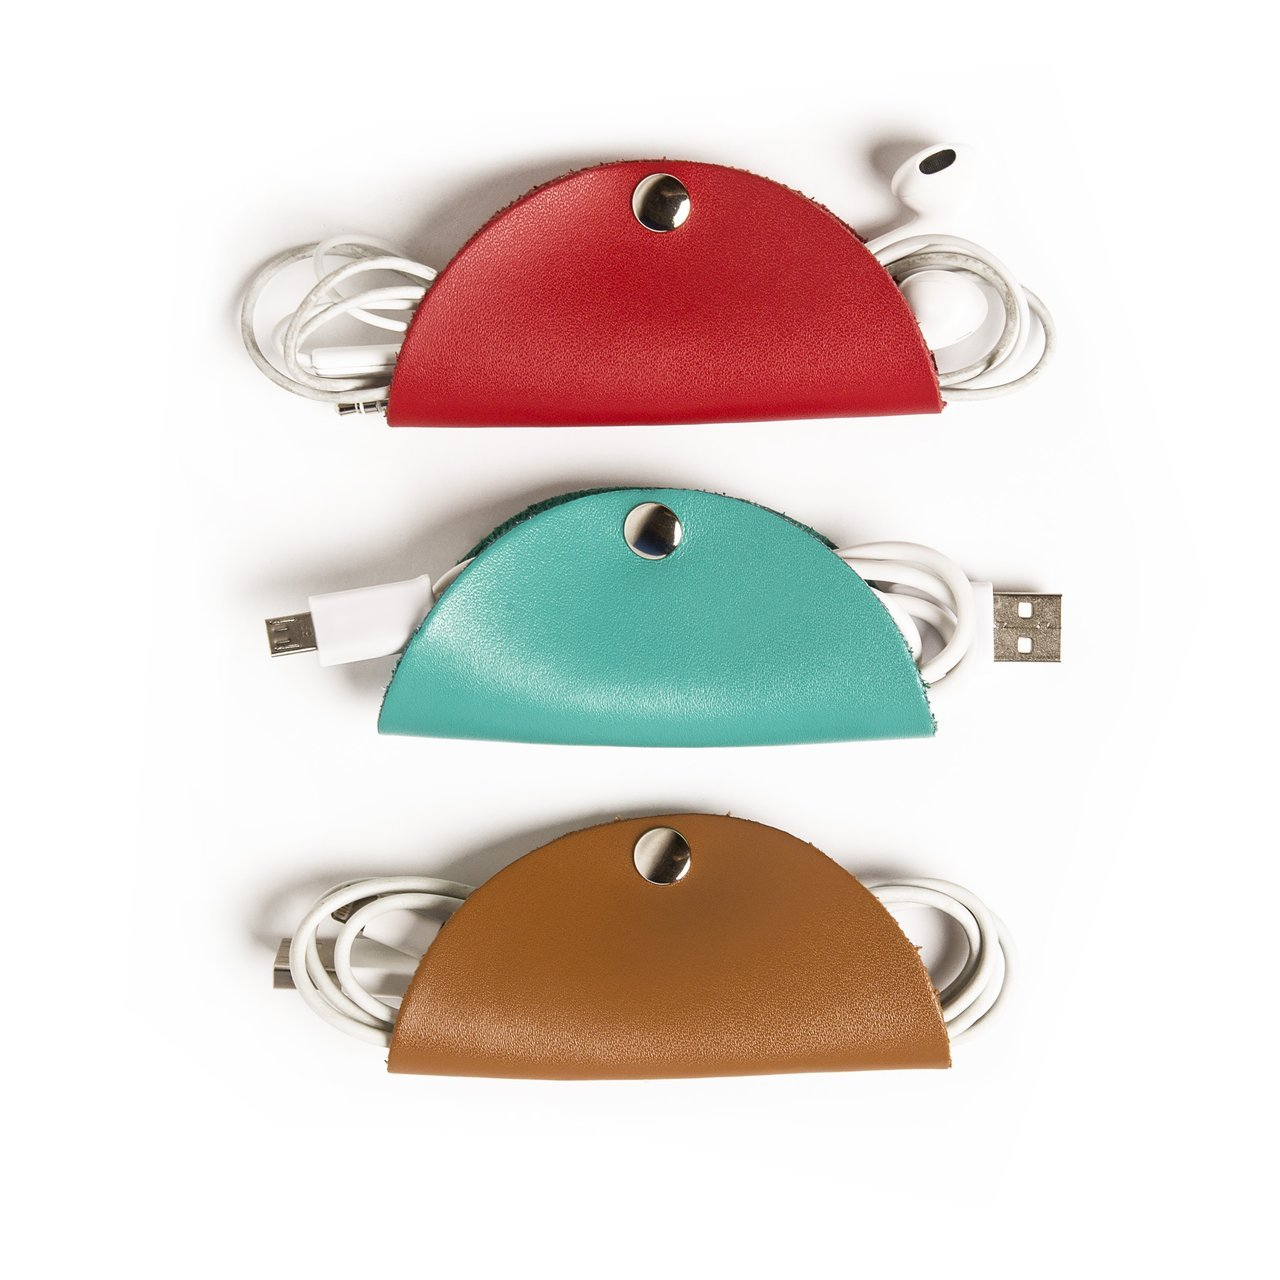 Brouk & Co Cord Taco Trio - (Red/Turquoise/Brown) - Cable Organizer Snaps for Tech Accessories